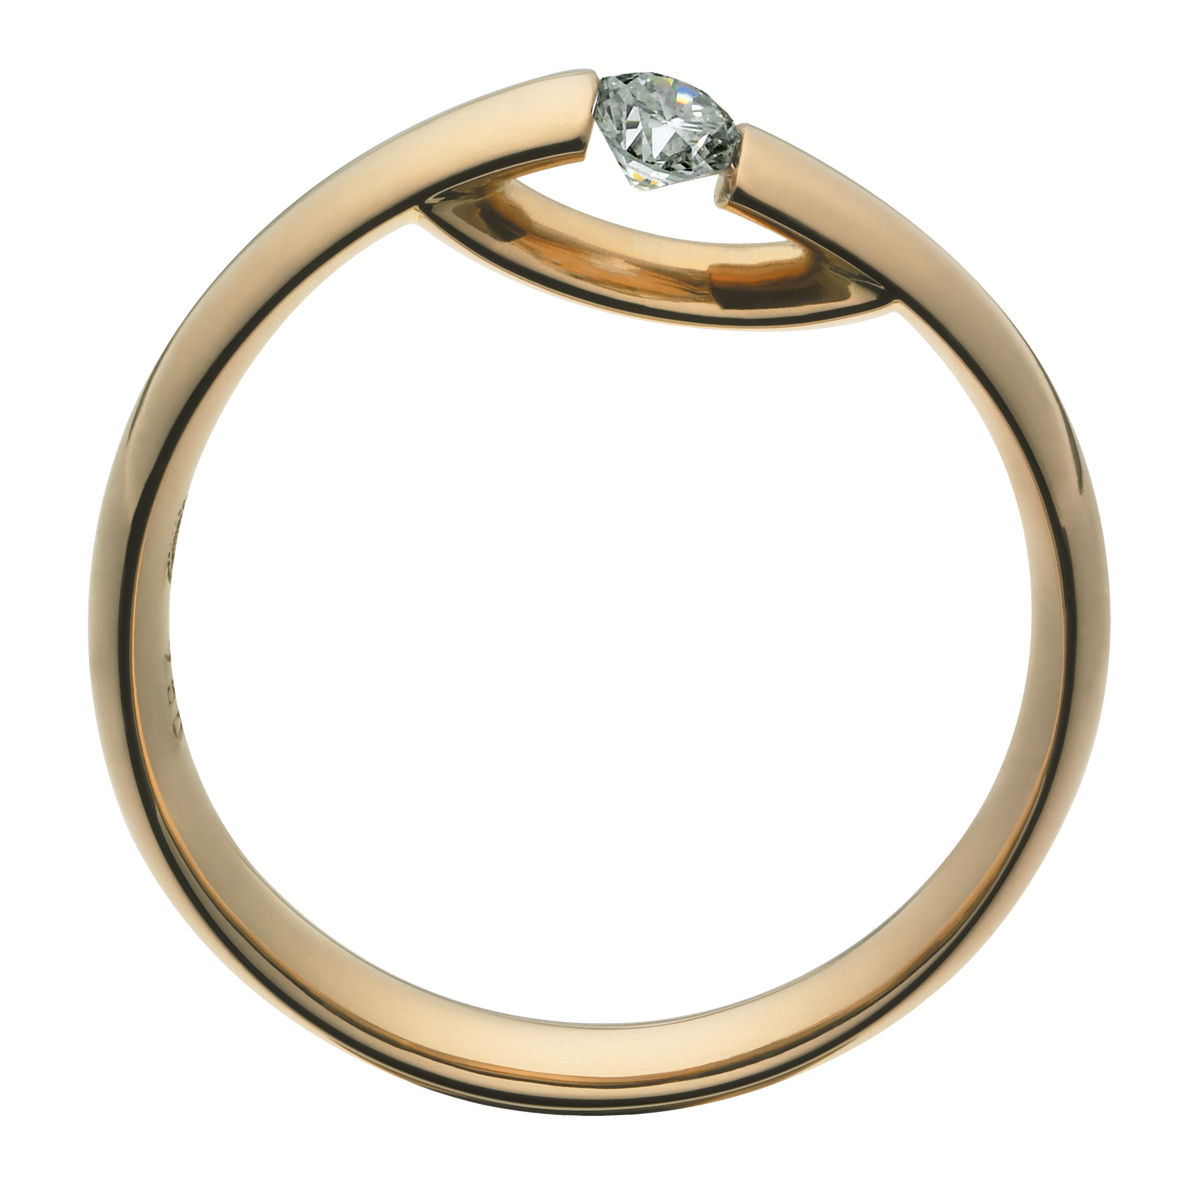 Georg Jensen Centenary ring 18 kt med diamant